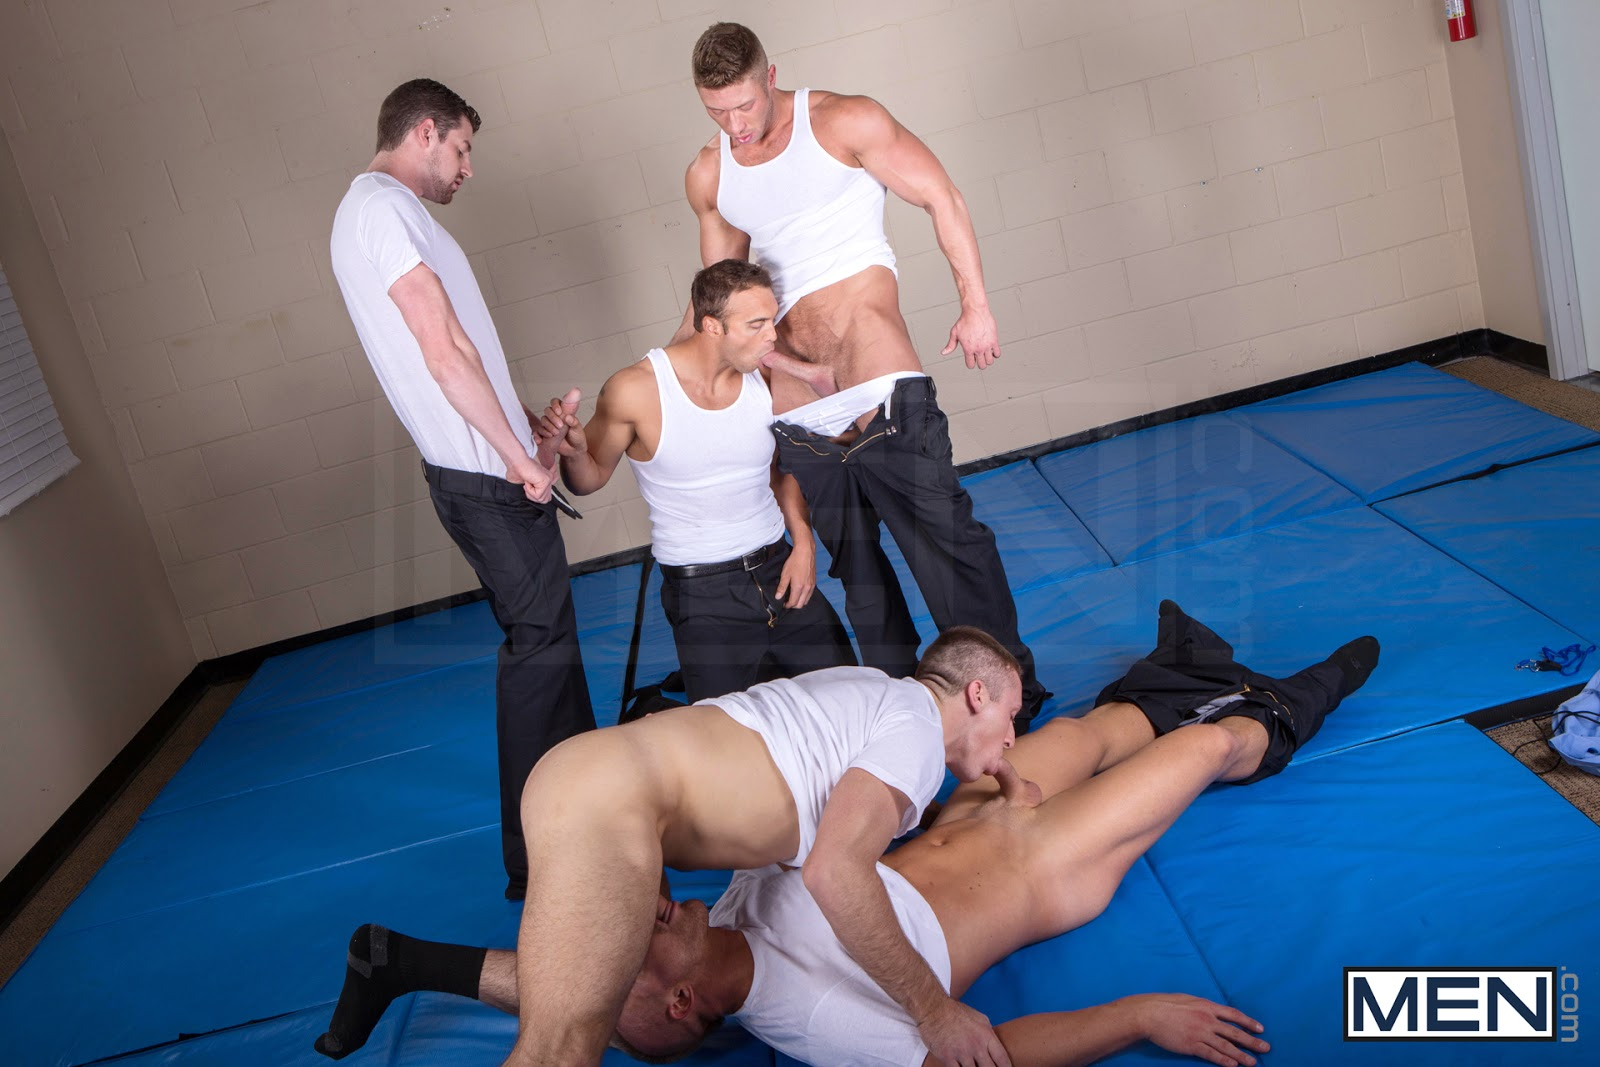 men in blue 3 connor kline liam magnuson rocco reed johnny ryder